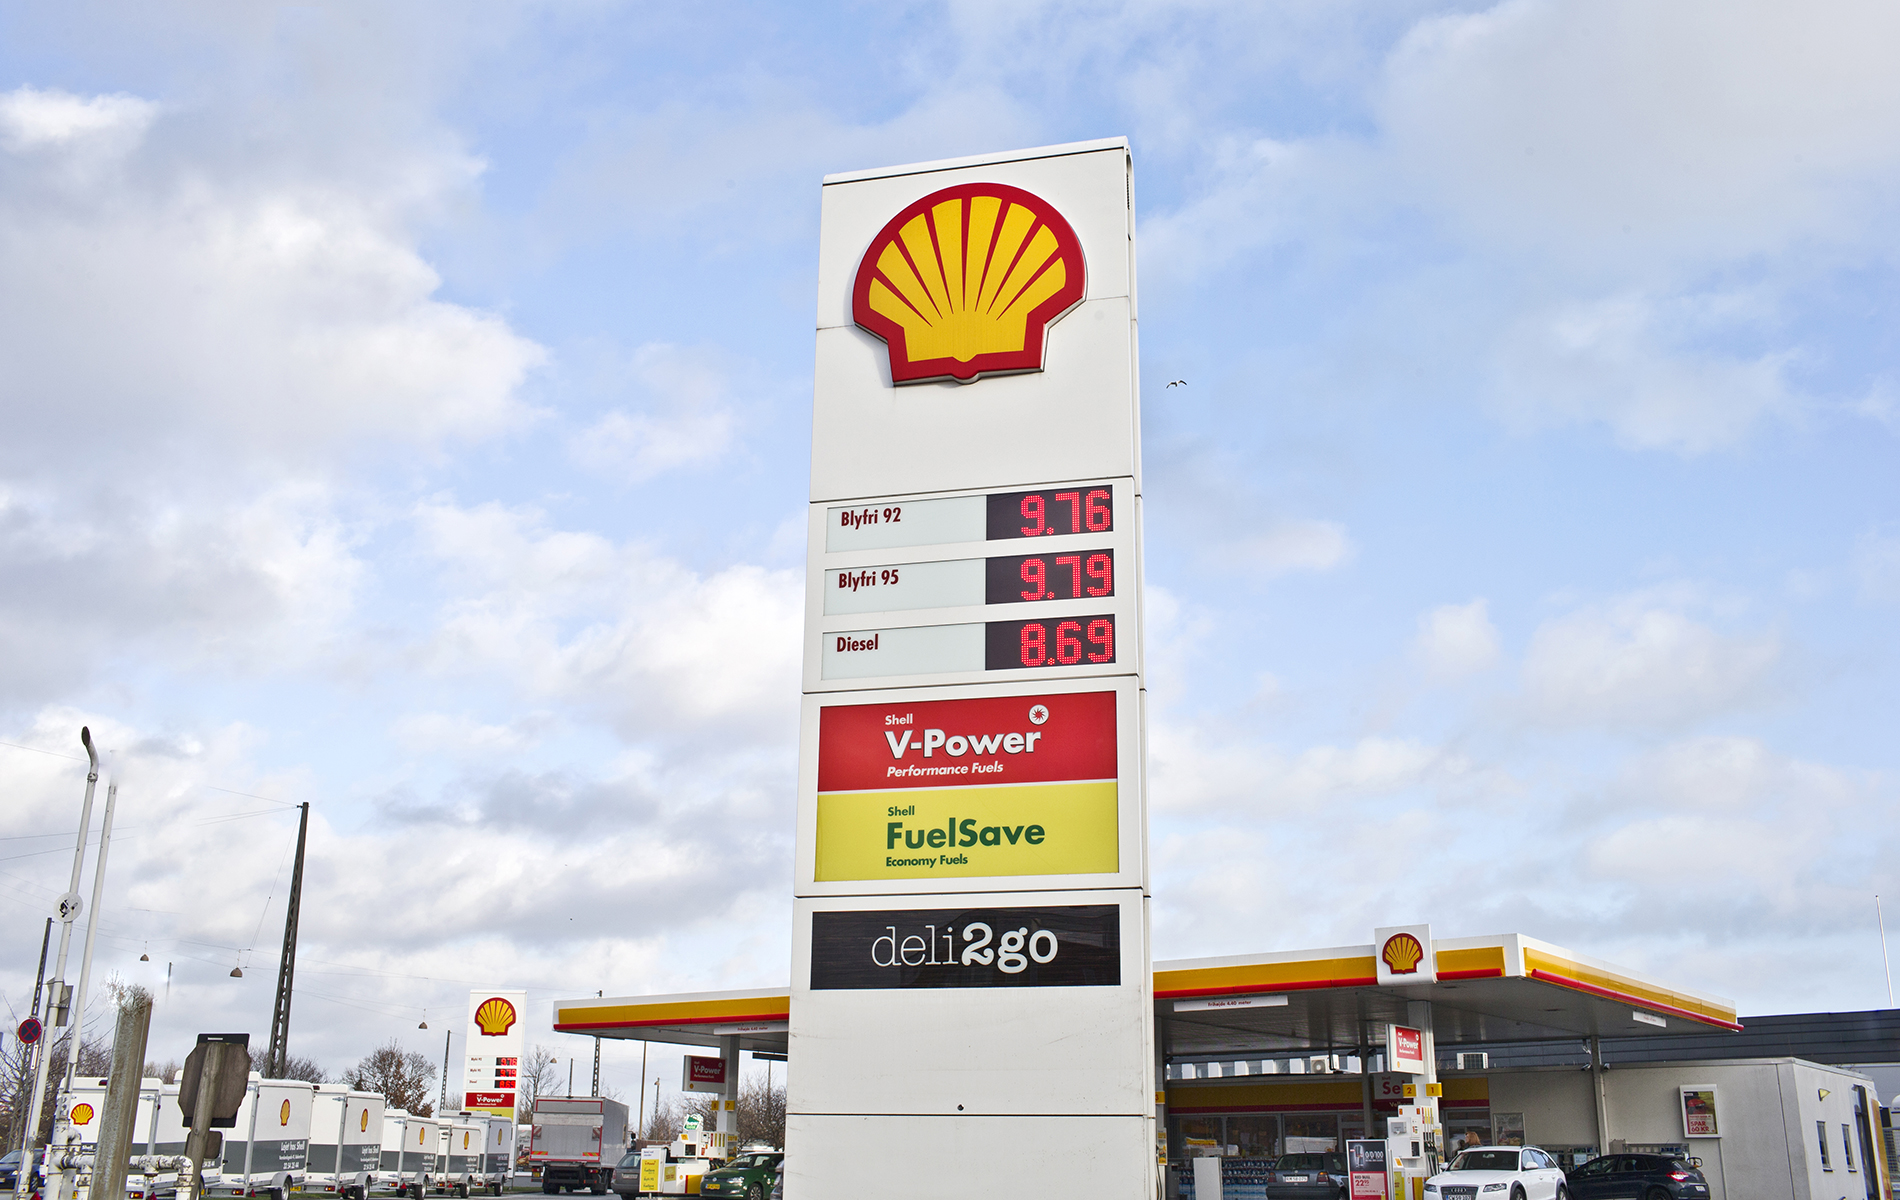 Find nærmeste Shell station